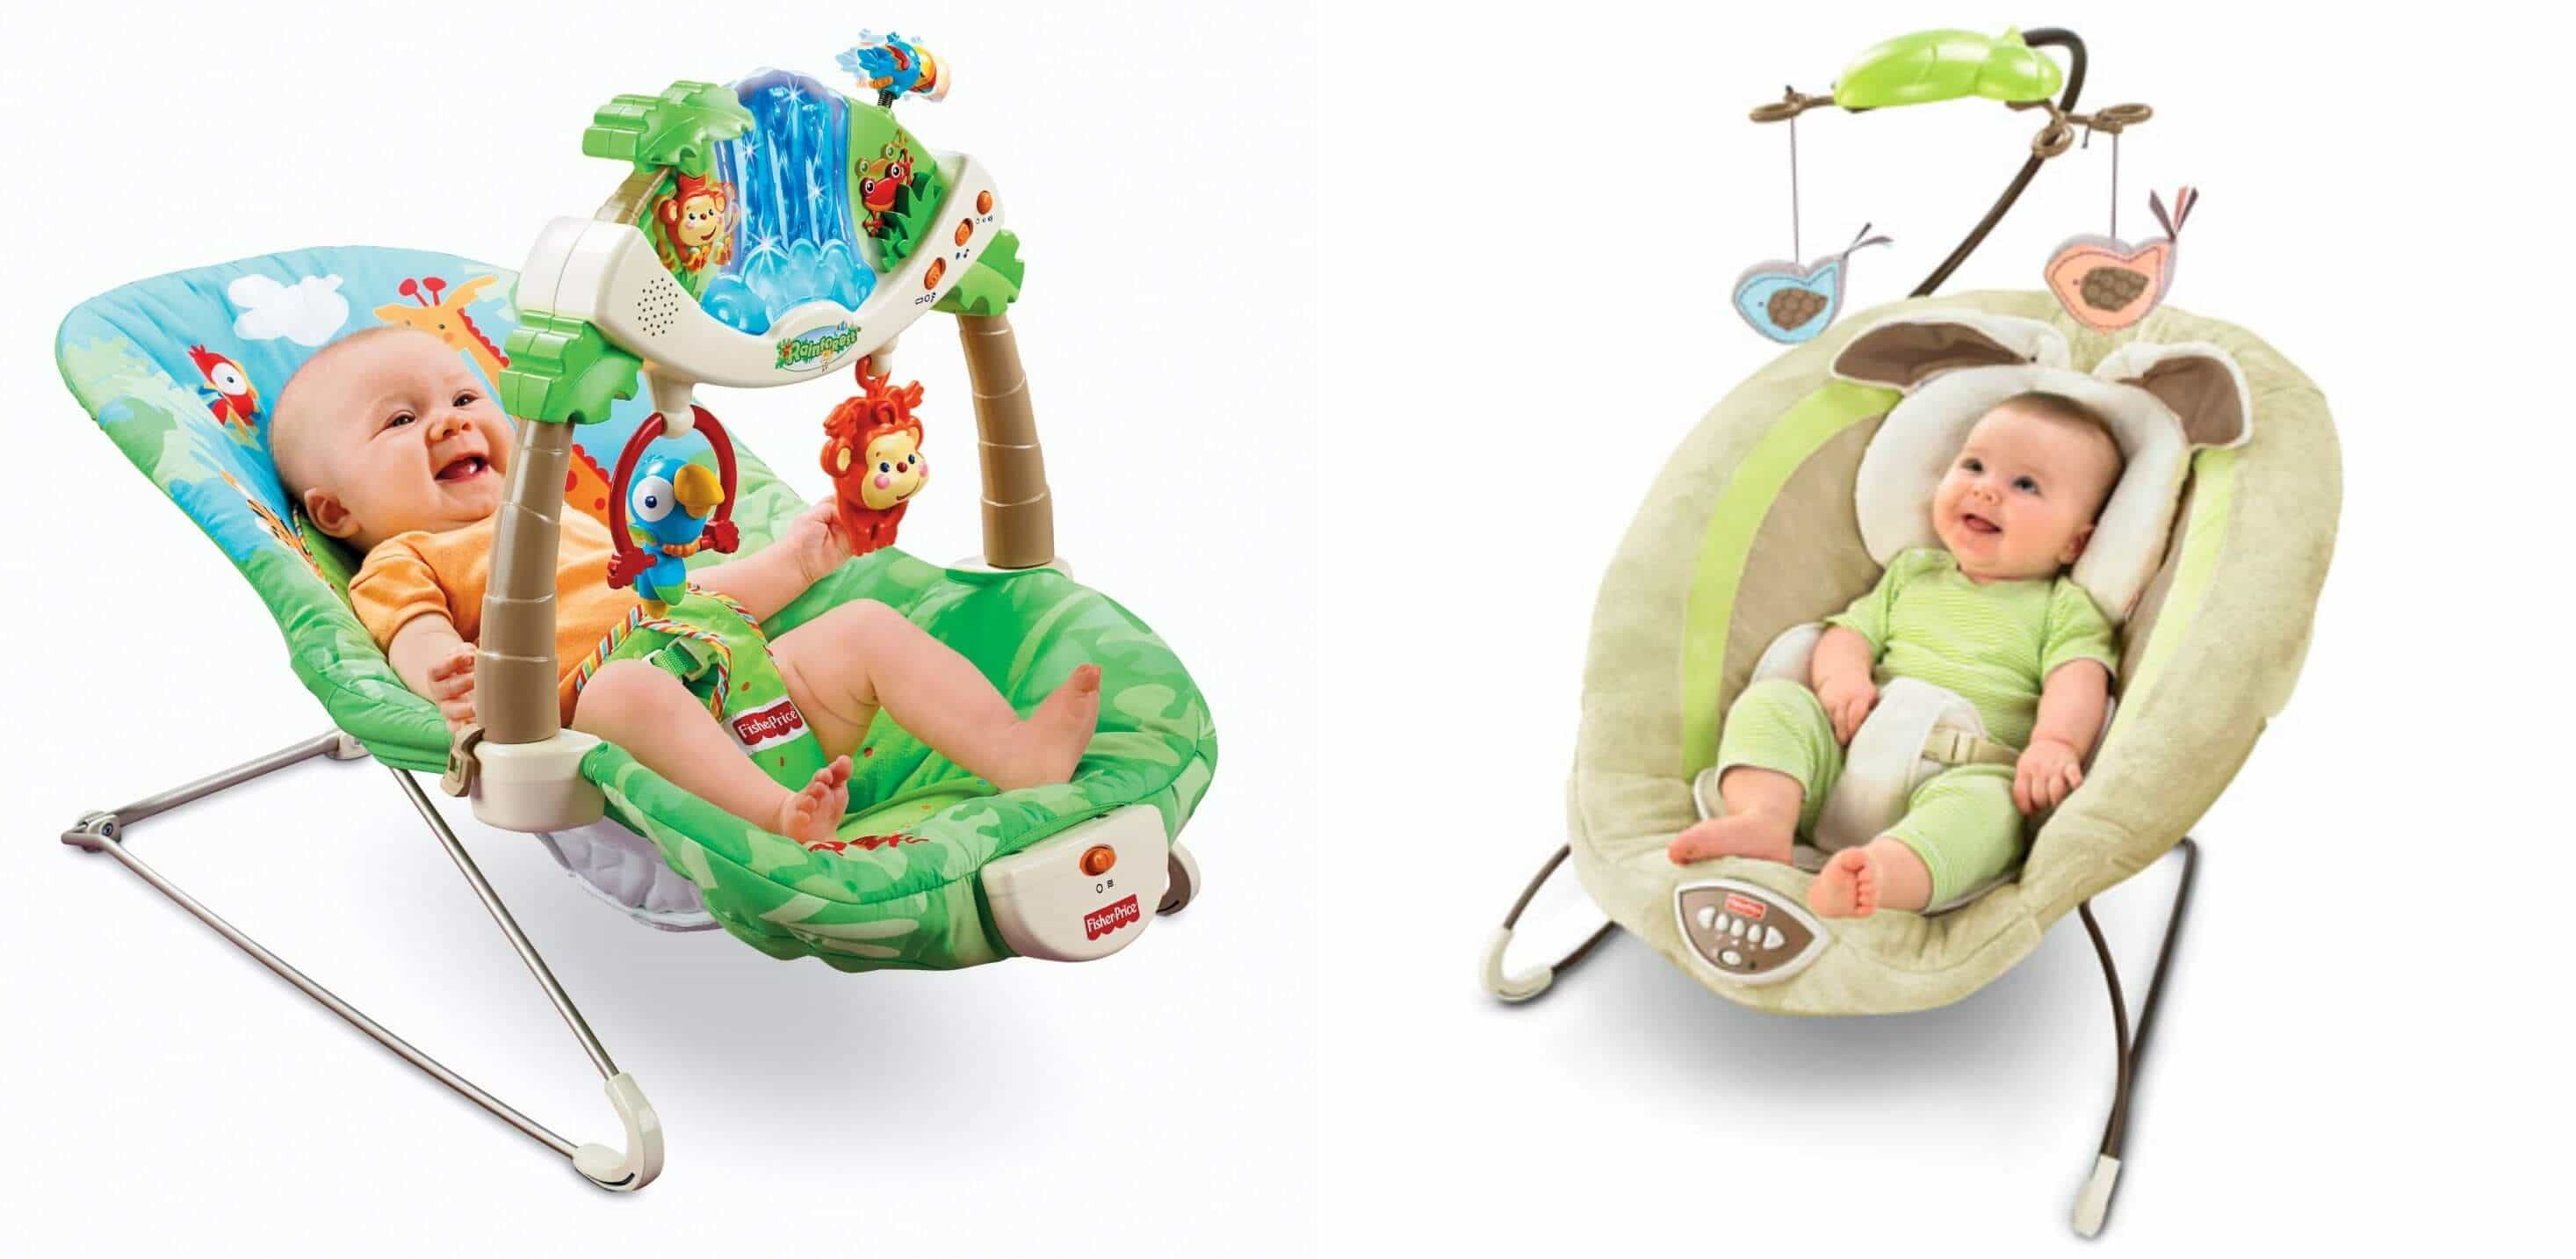 Bouncer Baby Best Baby Bouncers For Newborns Review